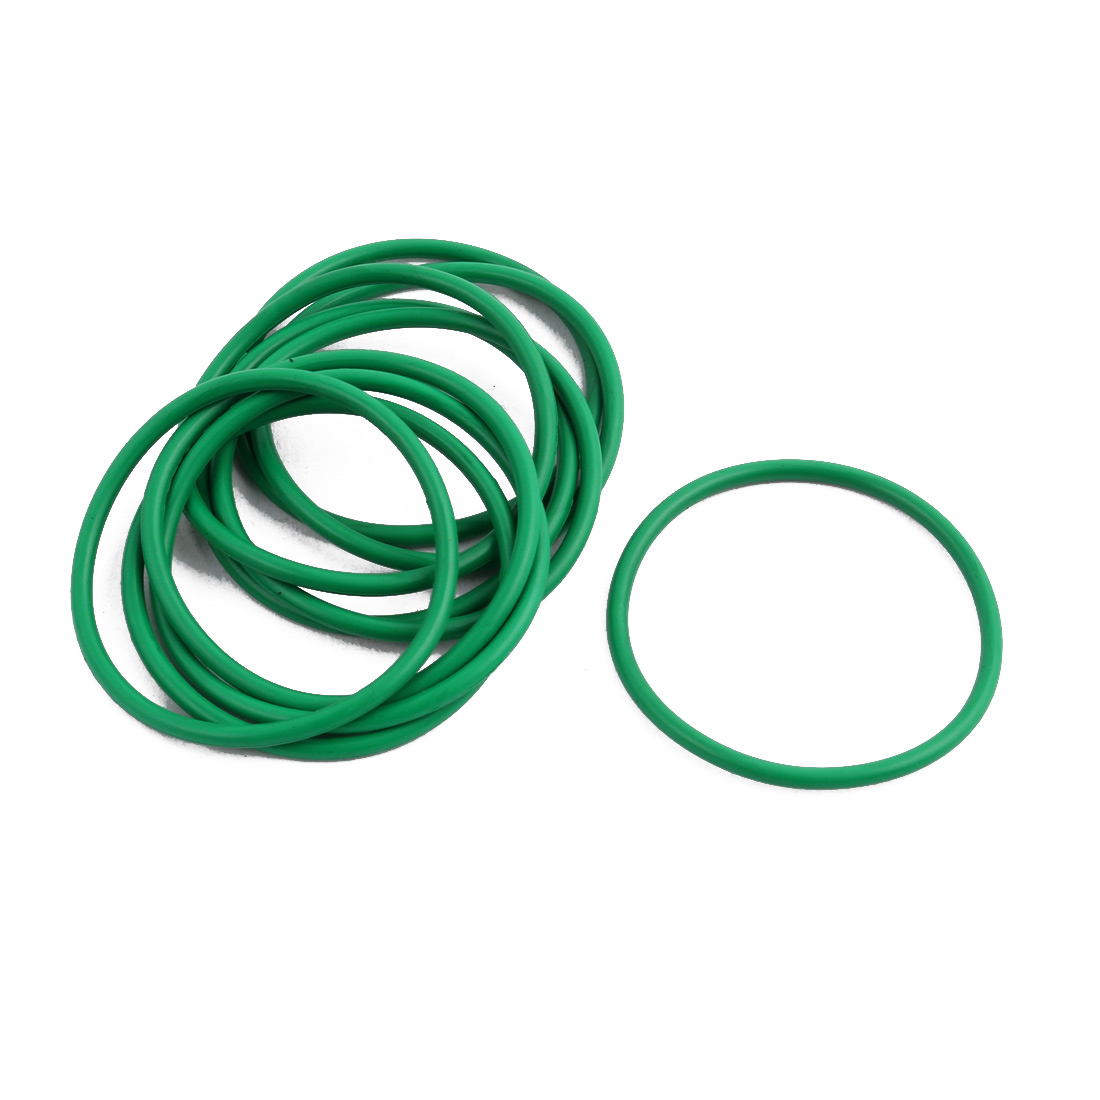 10Pcs Green 34 x 1.9mm Industrial Flexible Rubber O Ring Oil Sealing Grommets